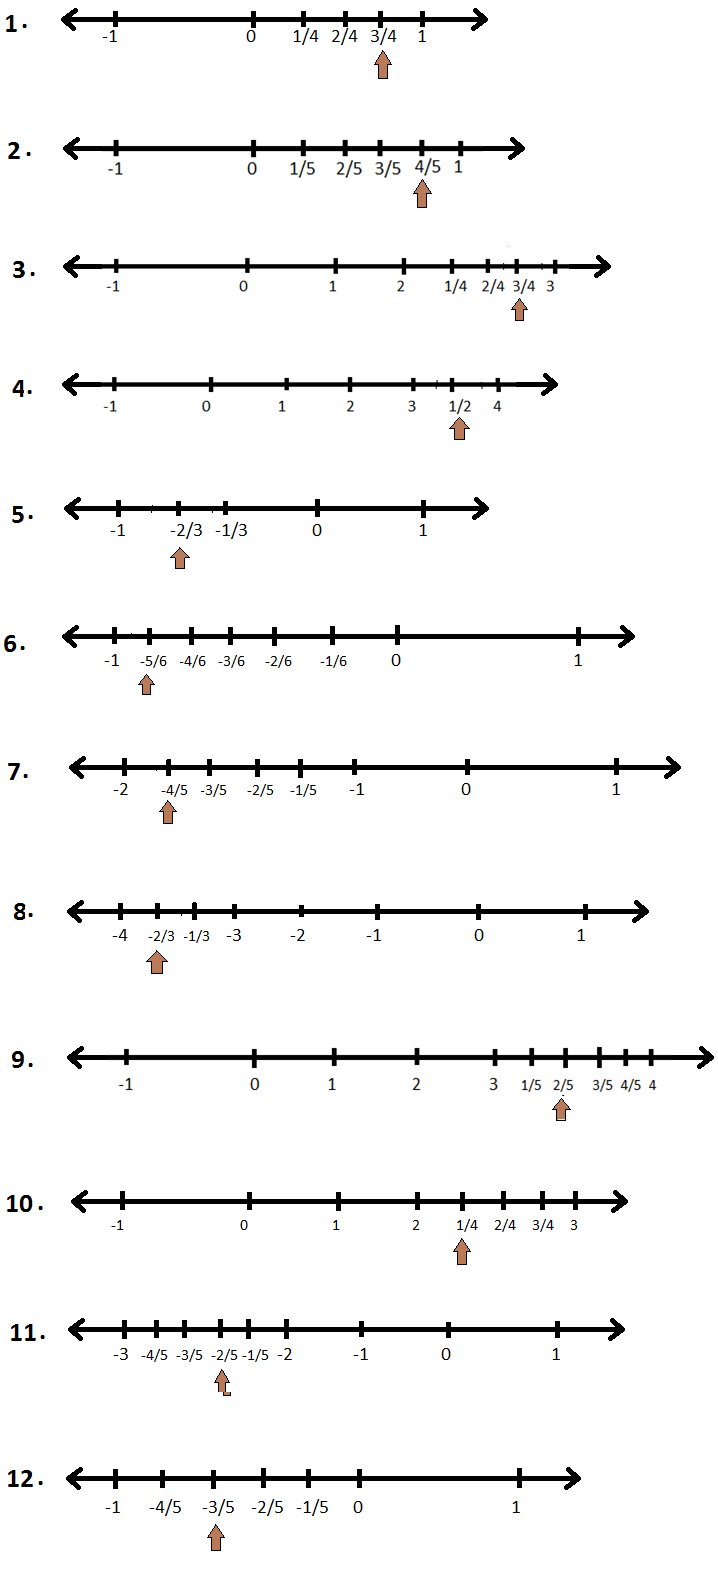 Worksheet On Representation Of Rational Numbers On The Number Line